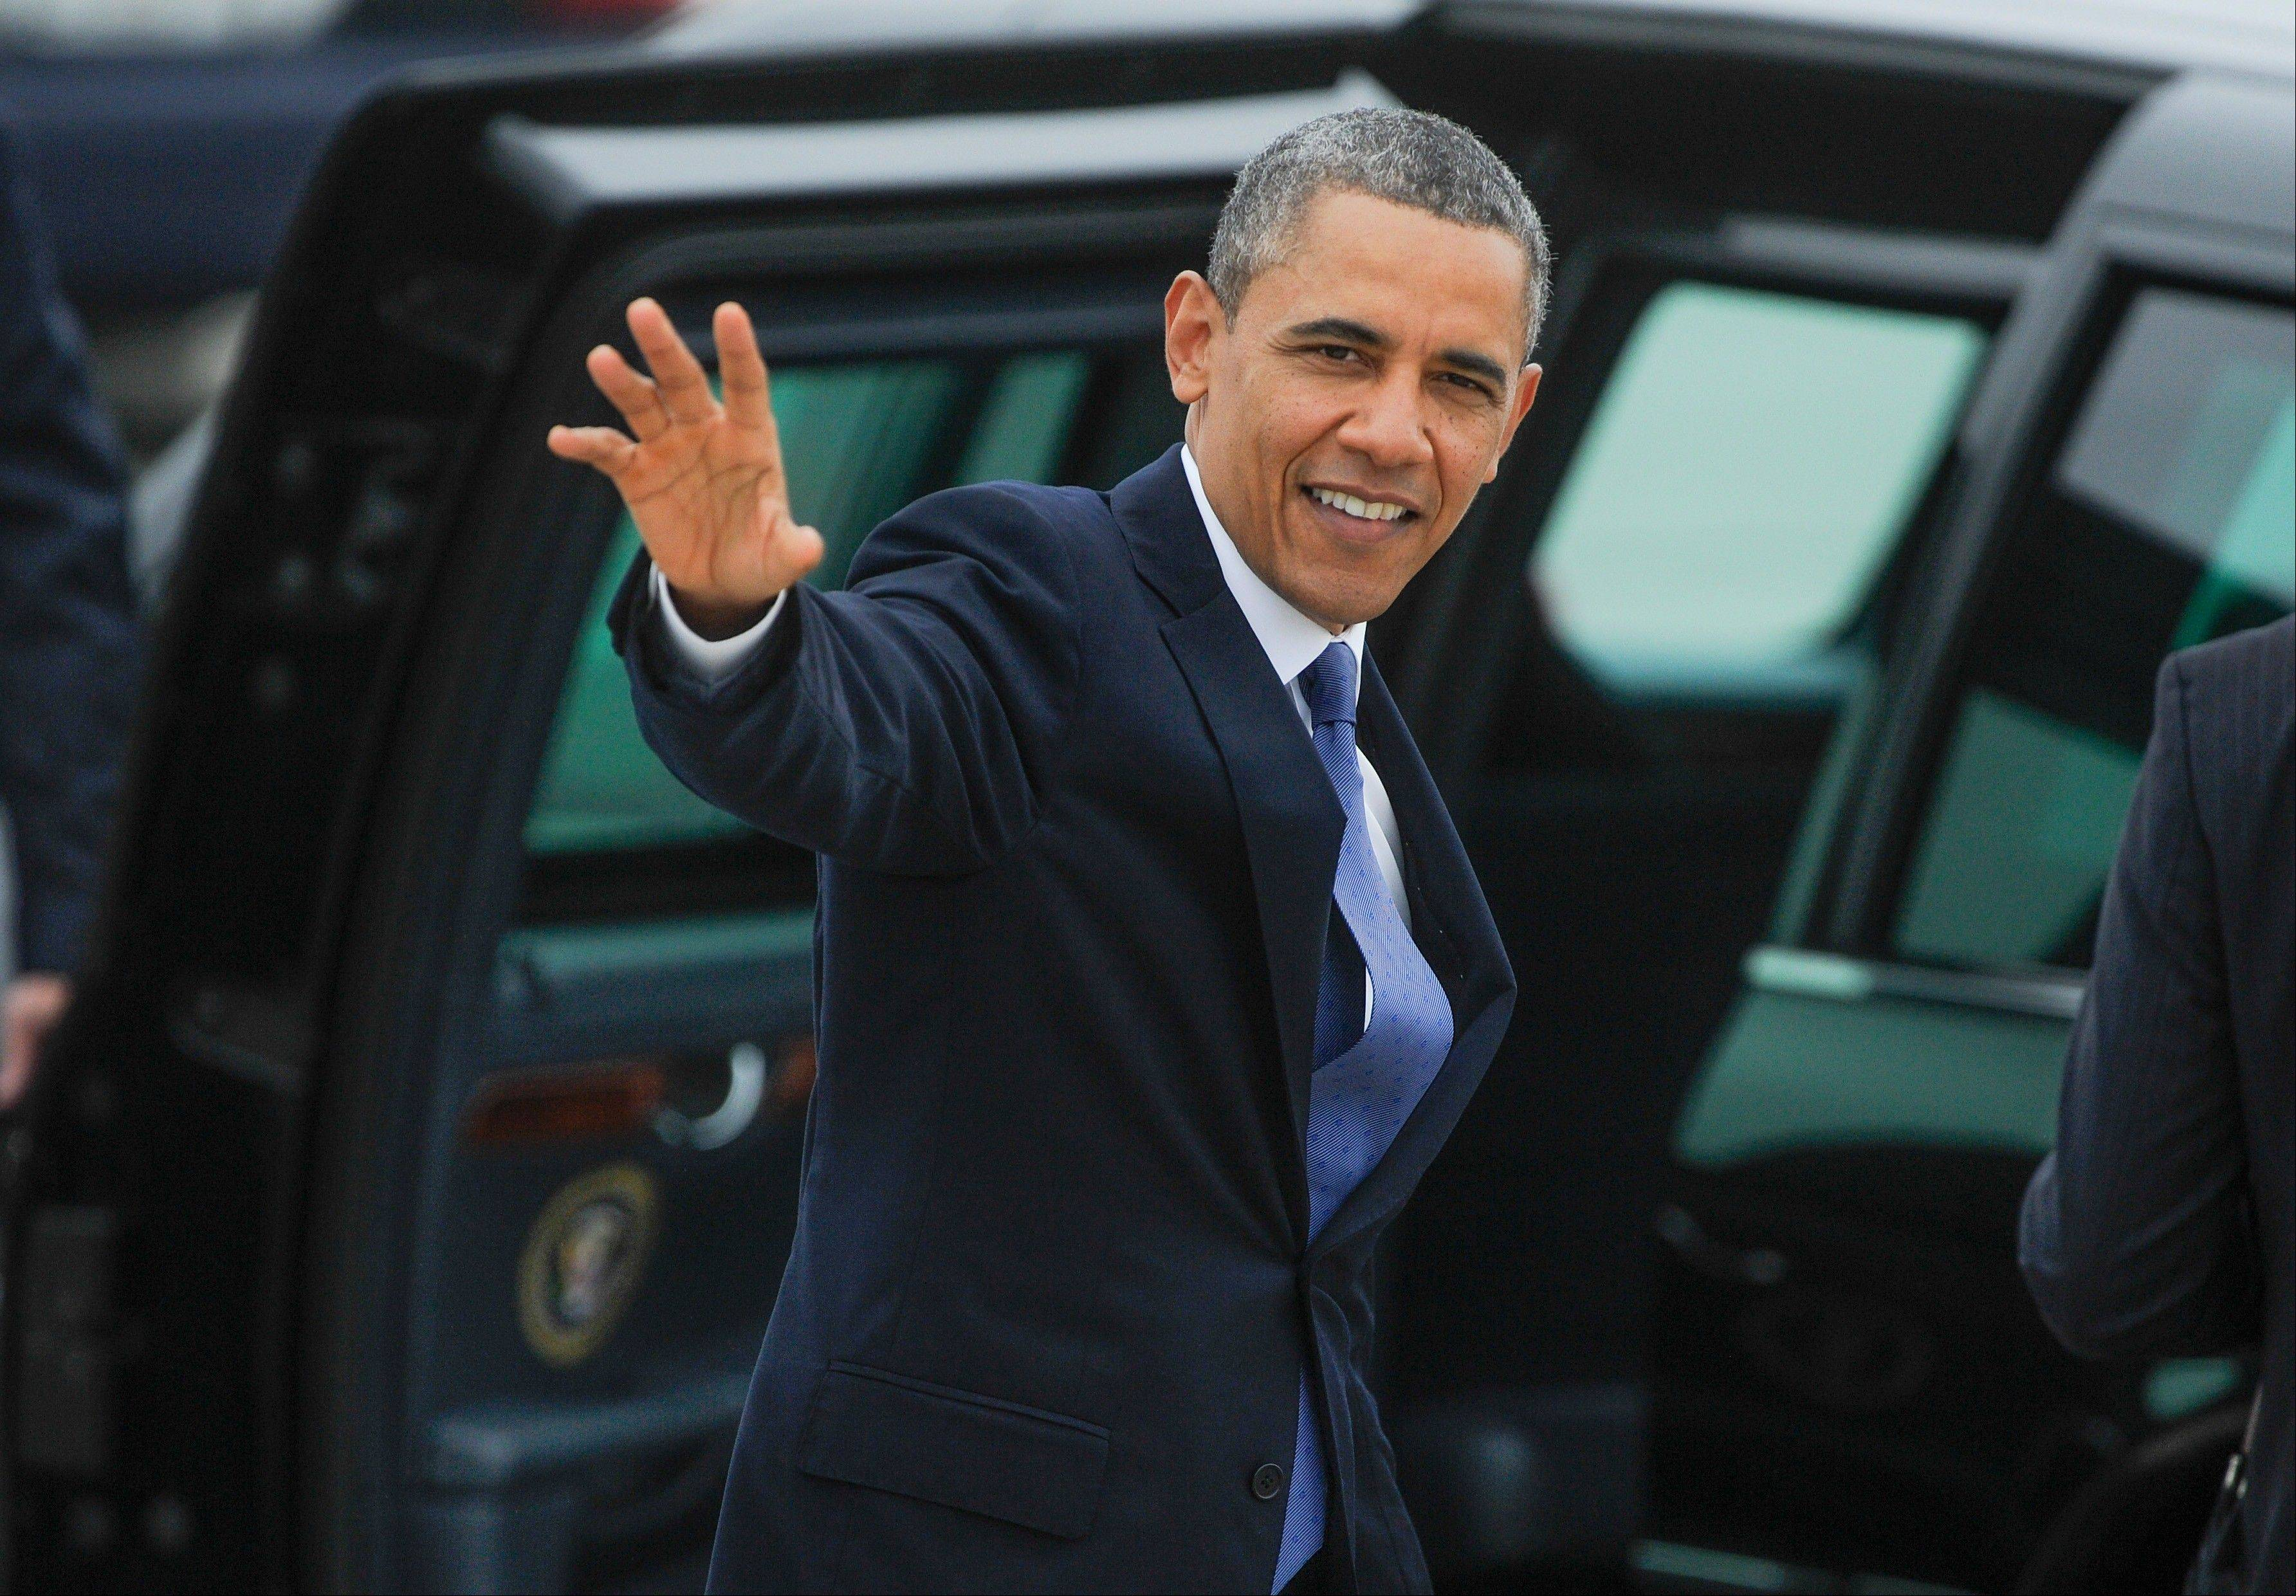 President Barack Obama waves to a crowd gathered at Hartsfield-Jackson International Airport on his way to give the commencement speech at Morehouse College Sunday in Atlanta.